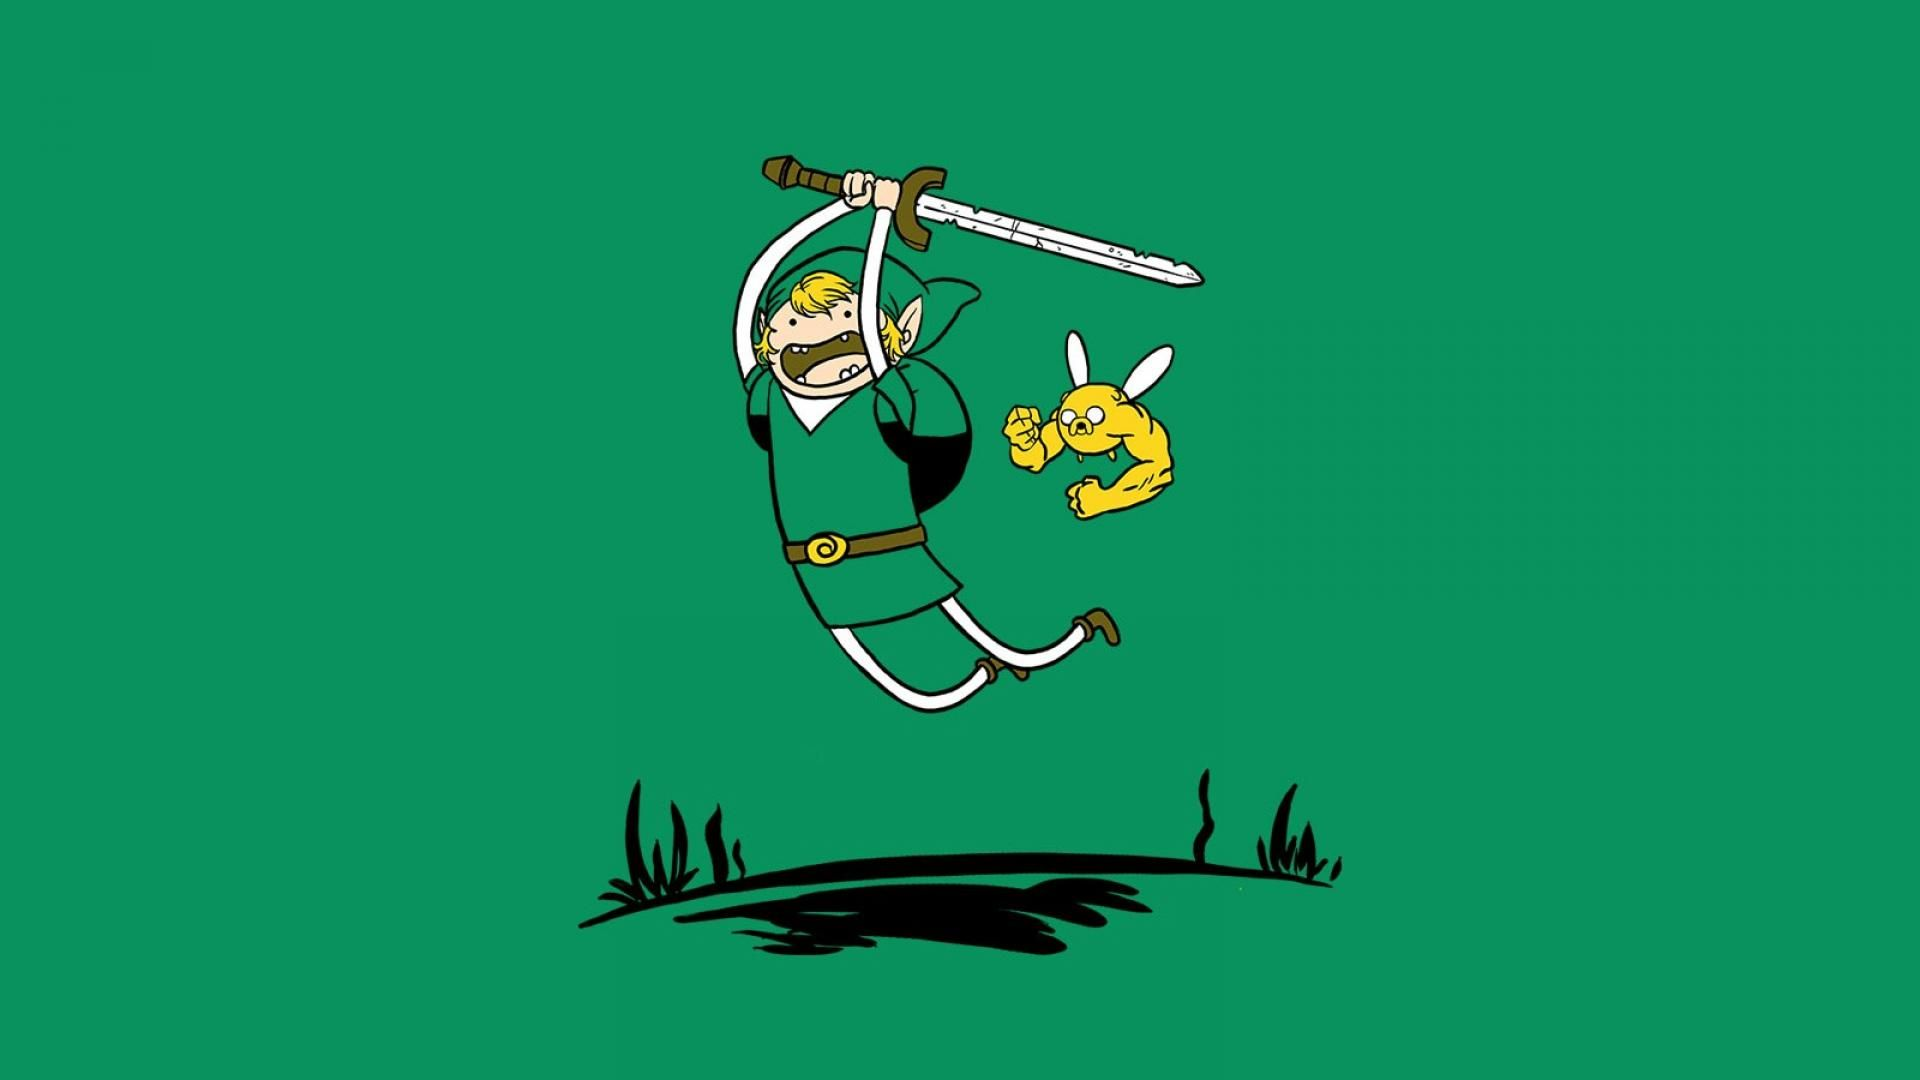 Funny Adventure Time Wallpapers   Top Funny Adventure Time 1920x1080